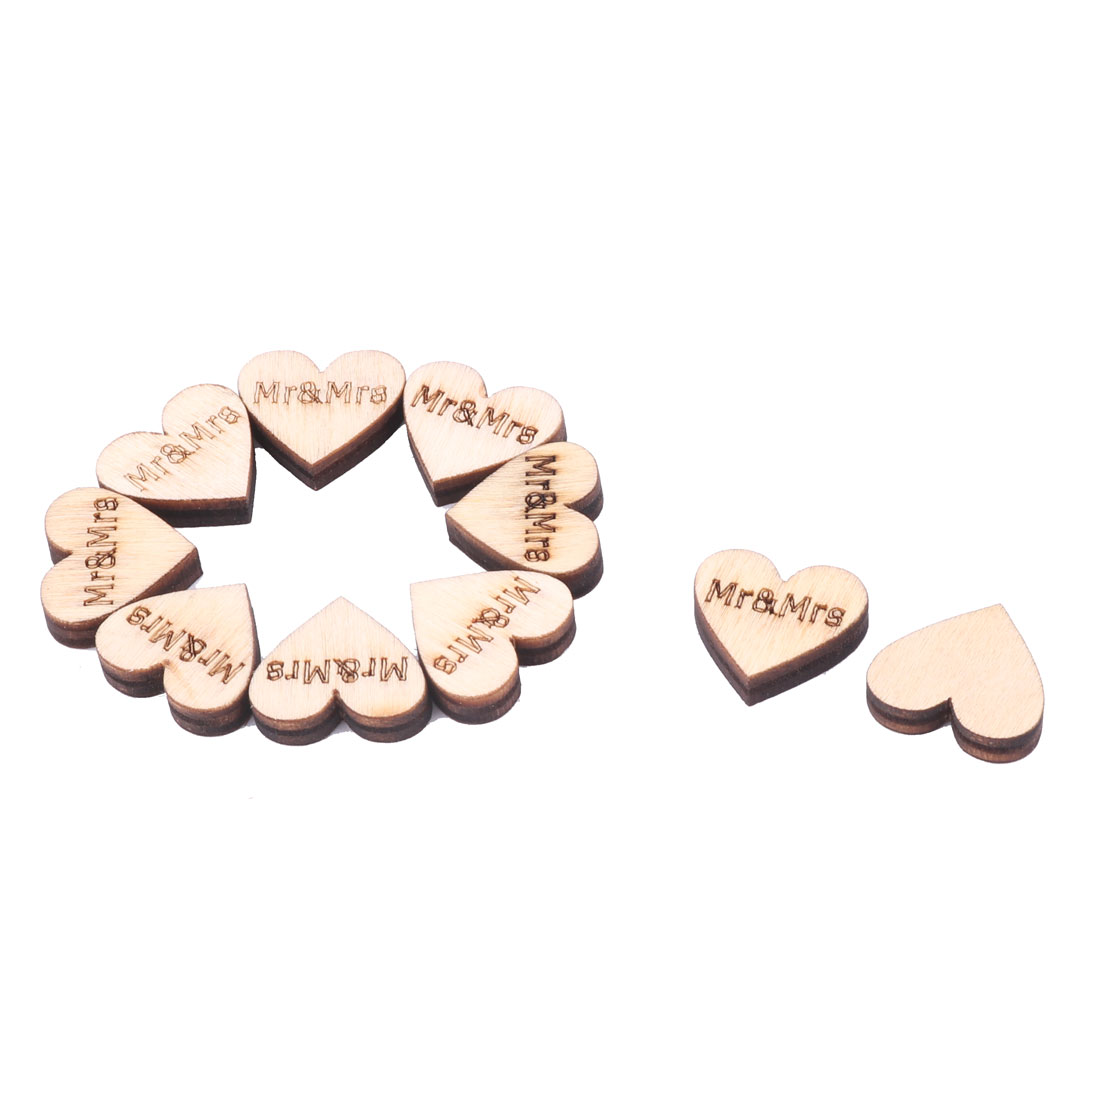 Wooden Heart Shape DIY Crafts Wedding Table Decor Accessories Embellishment 10 Pcs